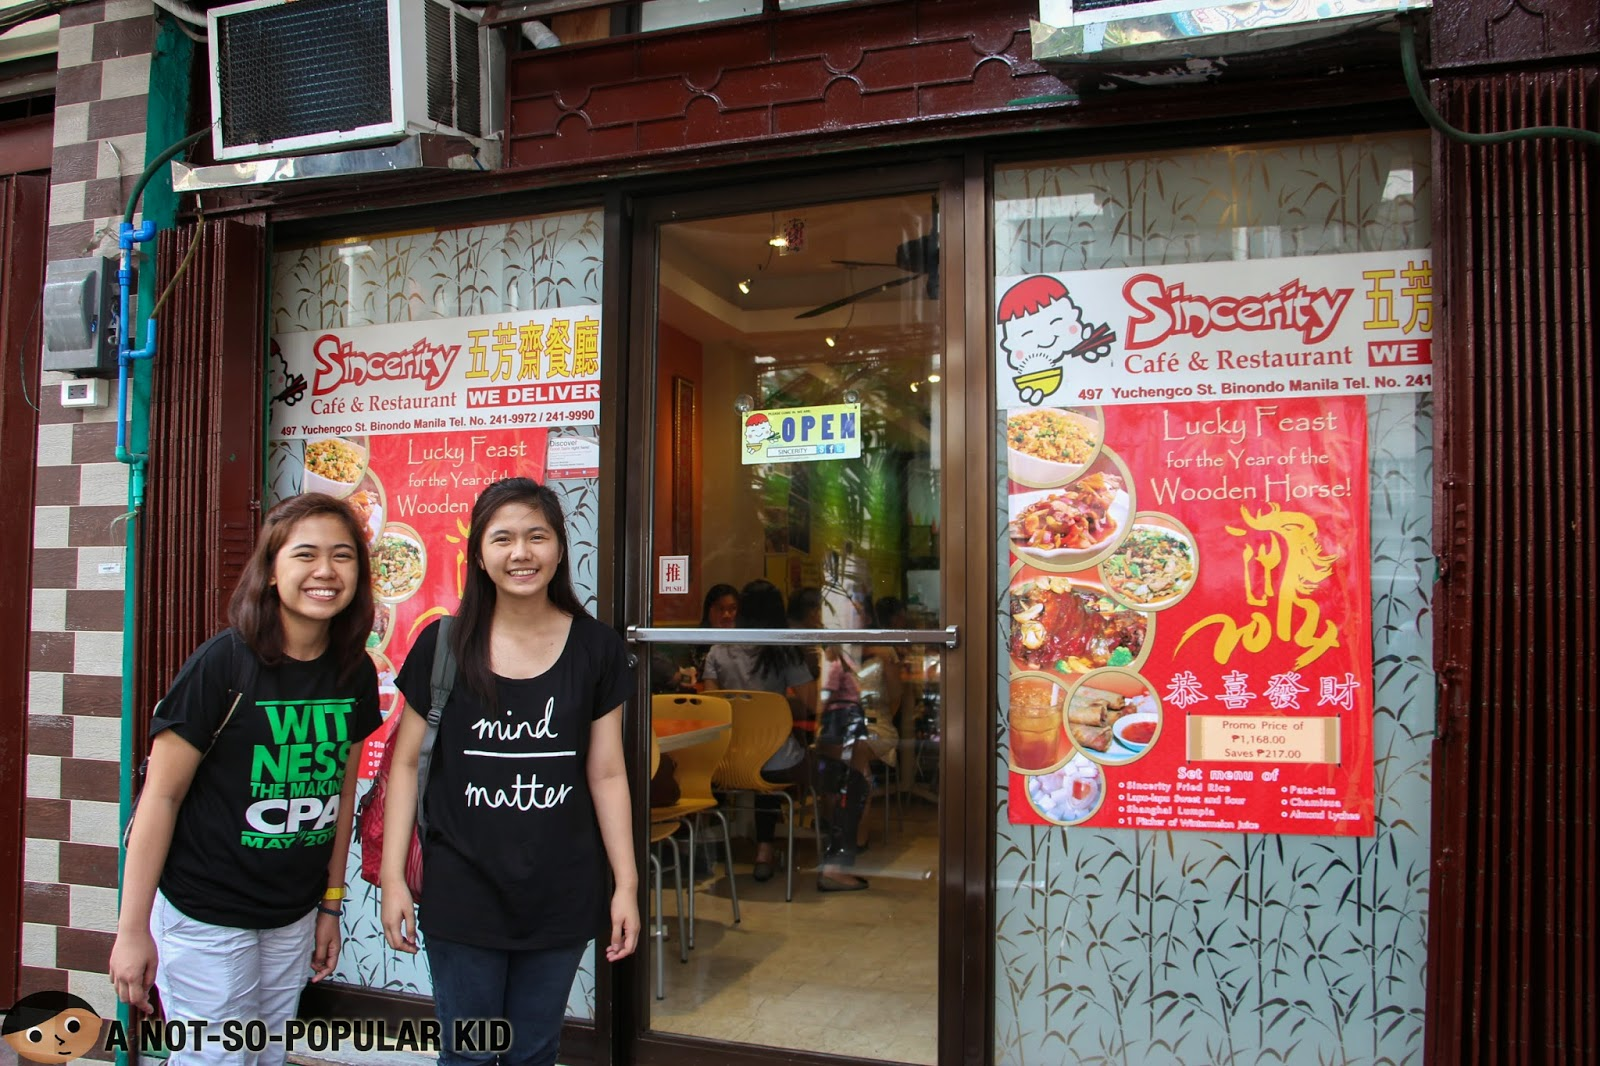 Outside Sincerity Cafe and Restaurant in Binondo